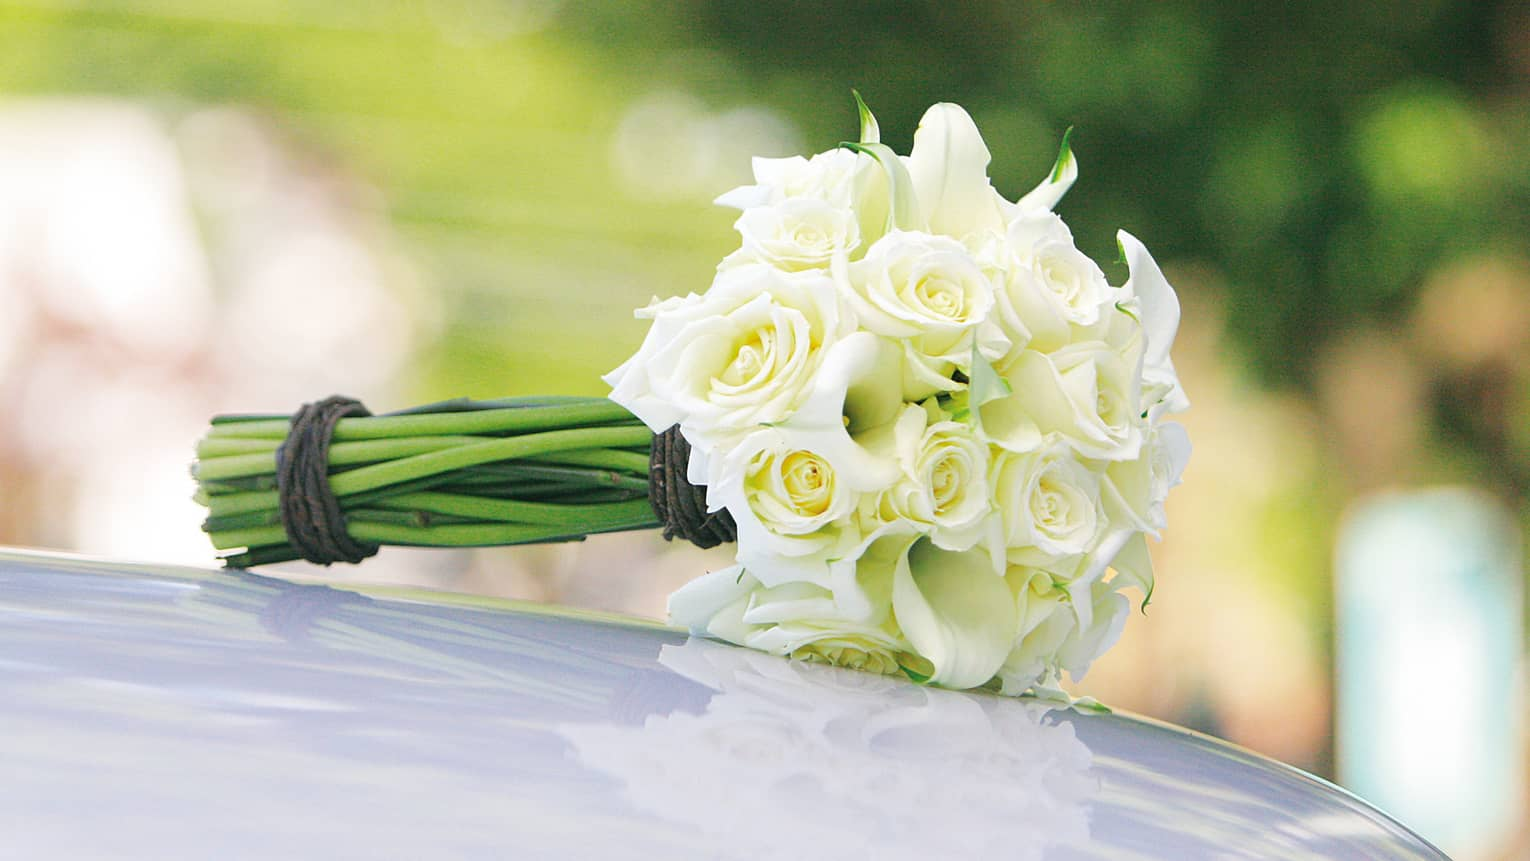 Wedding bouquet of white roses rests on hood of white car